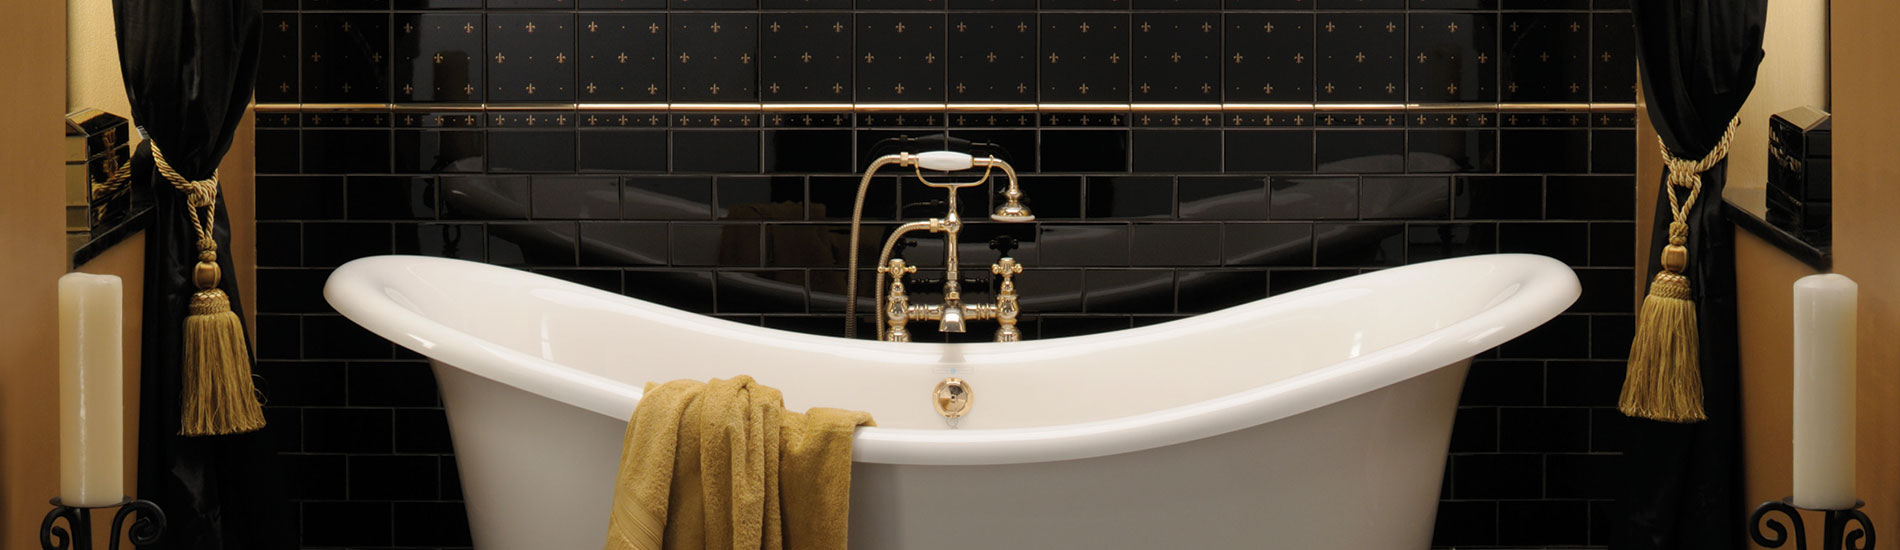 bathroom-and-tiles